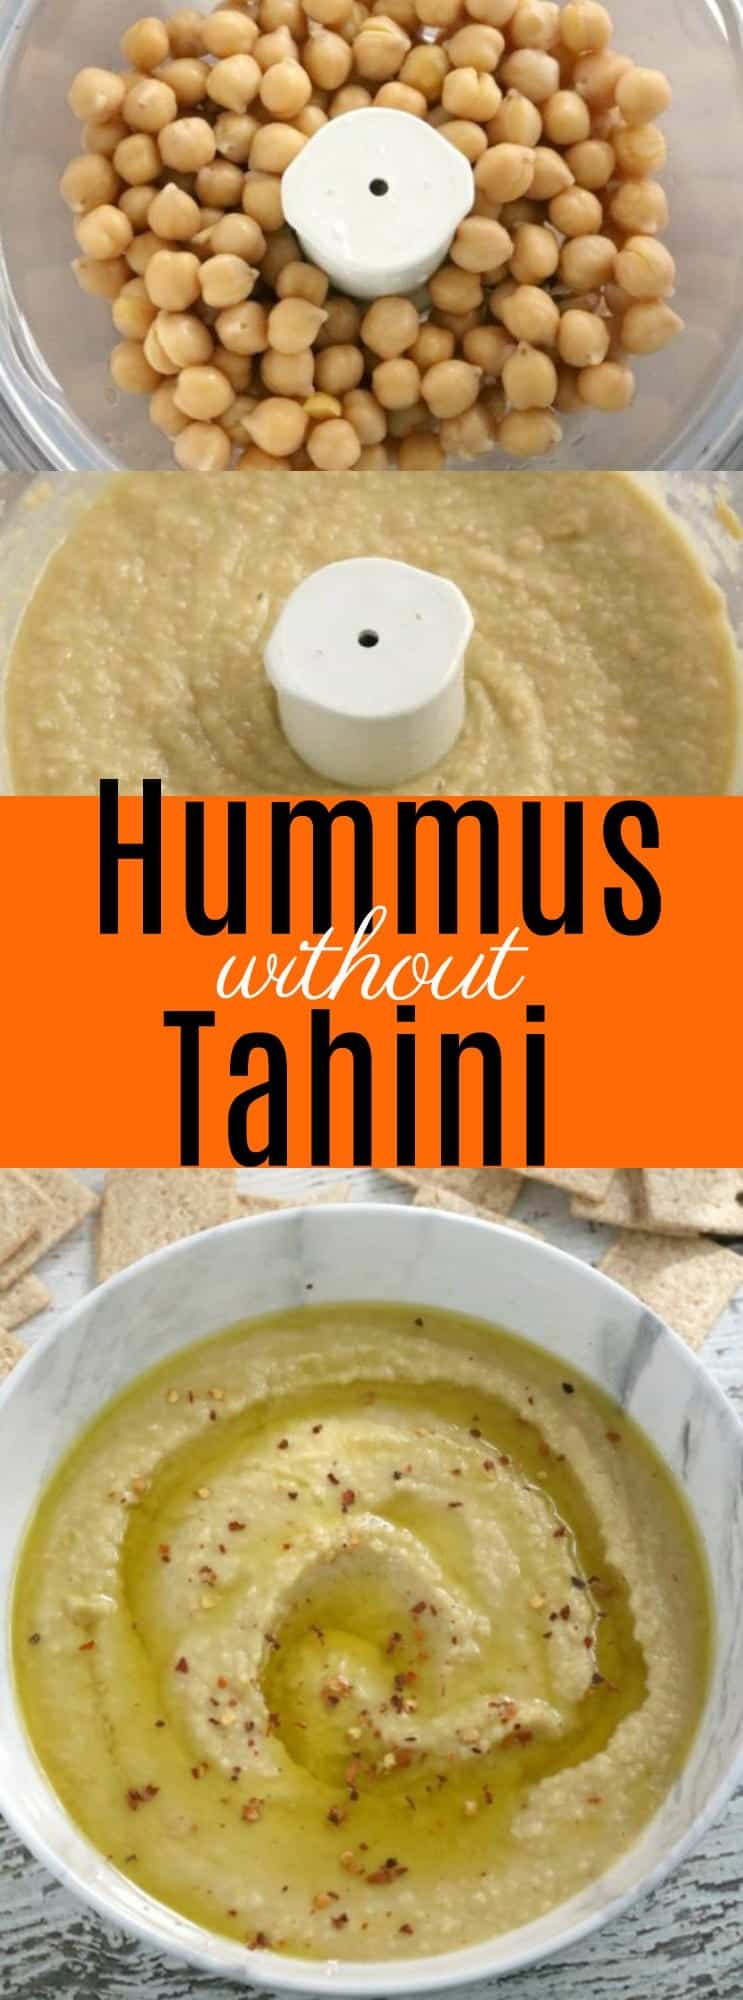 Hummus is a quick and healthy snack but can be expensive. This Hummus without Tahini is creamy and smooth and won't break the bank!#Hummus #without #tahini #Mediterranean #Recipe